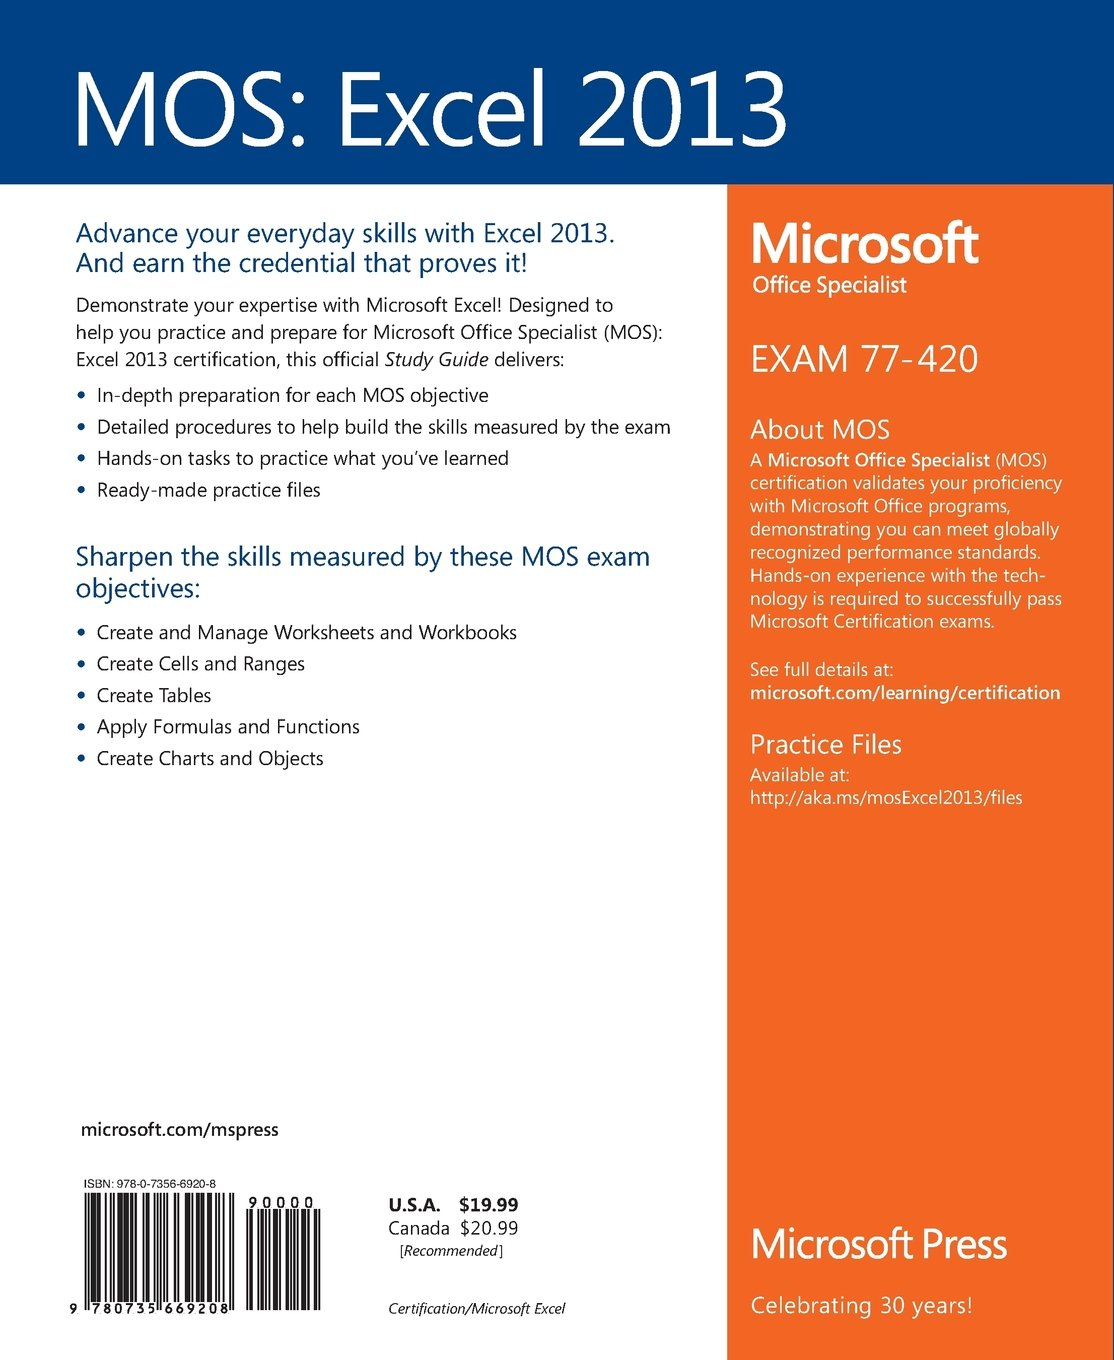 Buy mos 2013 study guide for microsoft excel book online at low buy mos 2013 study guide for microsoft excel book online at low prices in india mos 2013 study guide for microsoft excel reviews ratings amazon xflitez Images